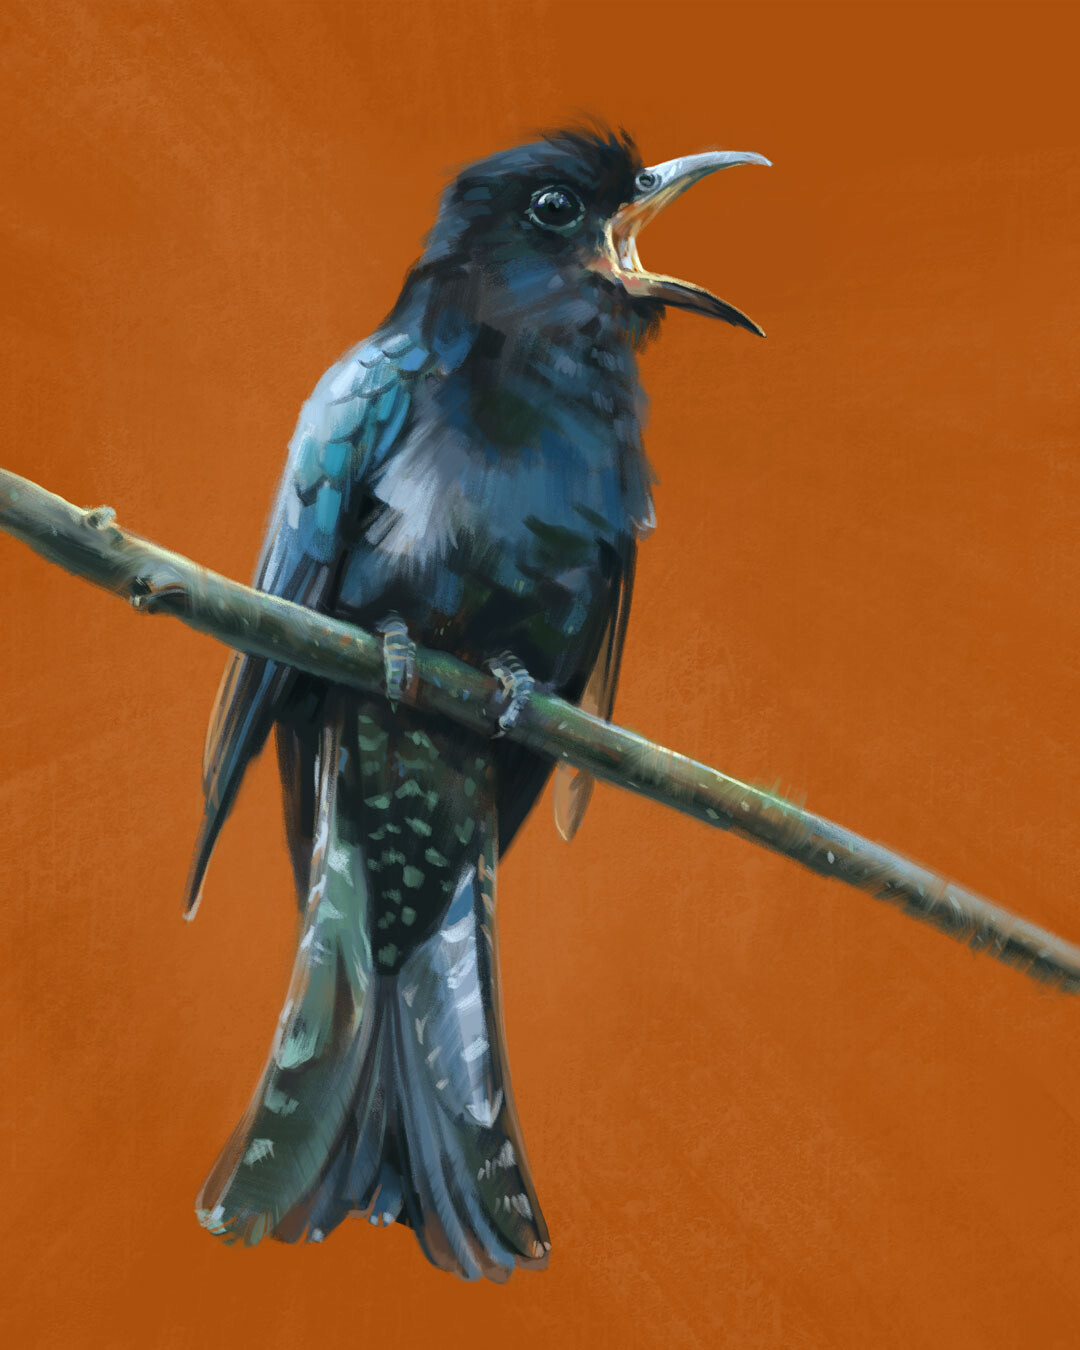 The call of the Square-tailed drongo-cuckoo (Surniculus lugubris)